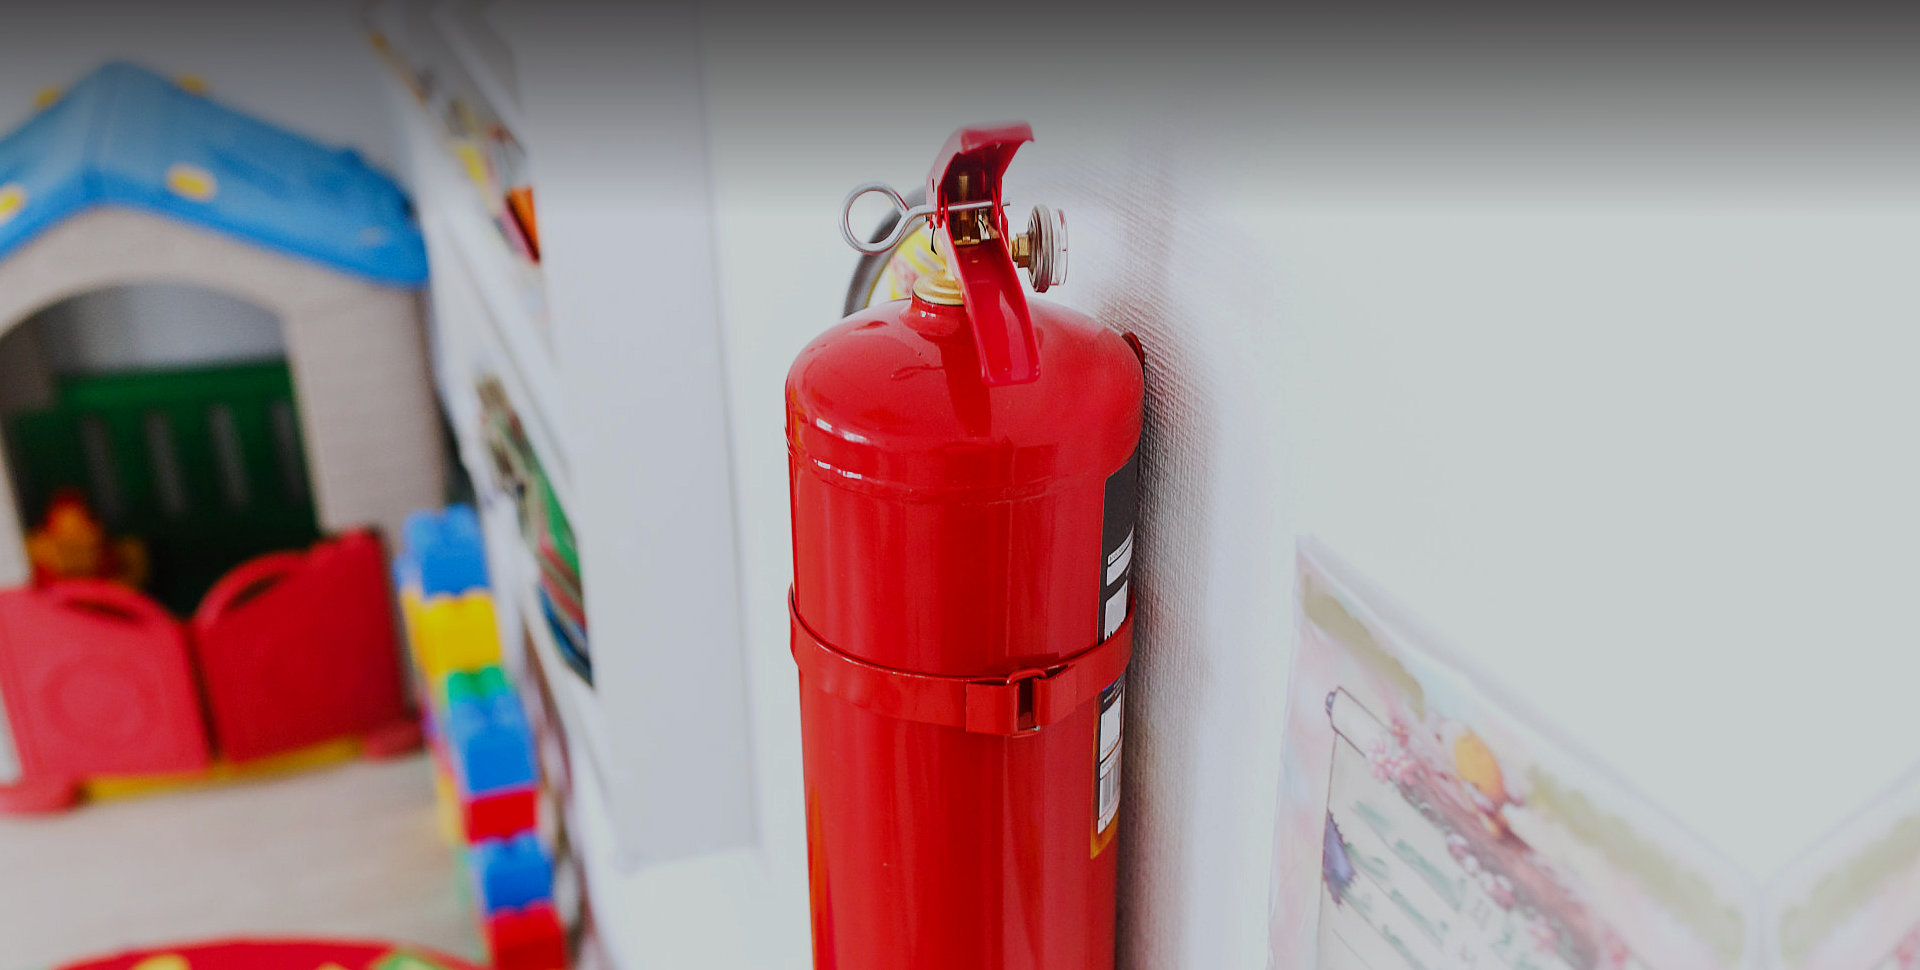 fire extinguisher mounted on a wall